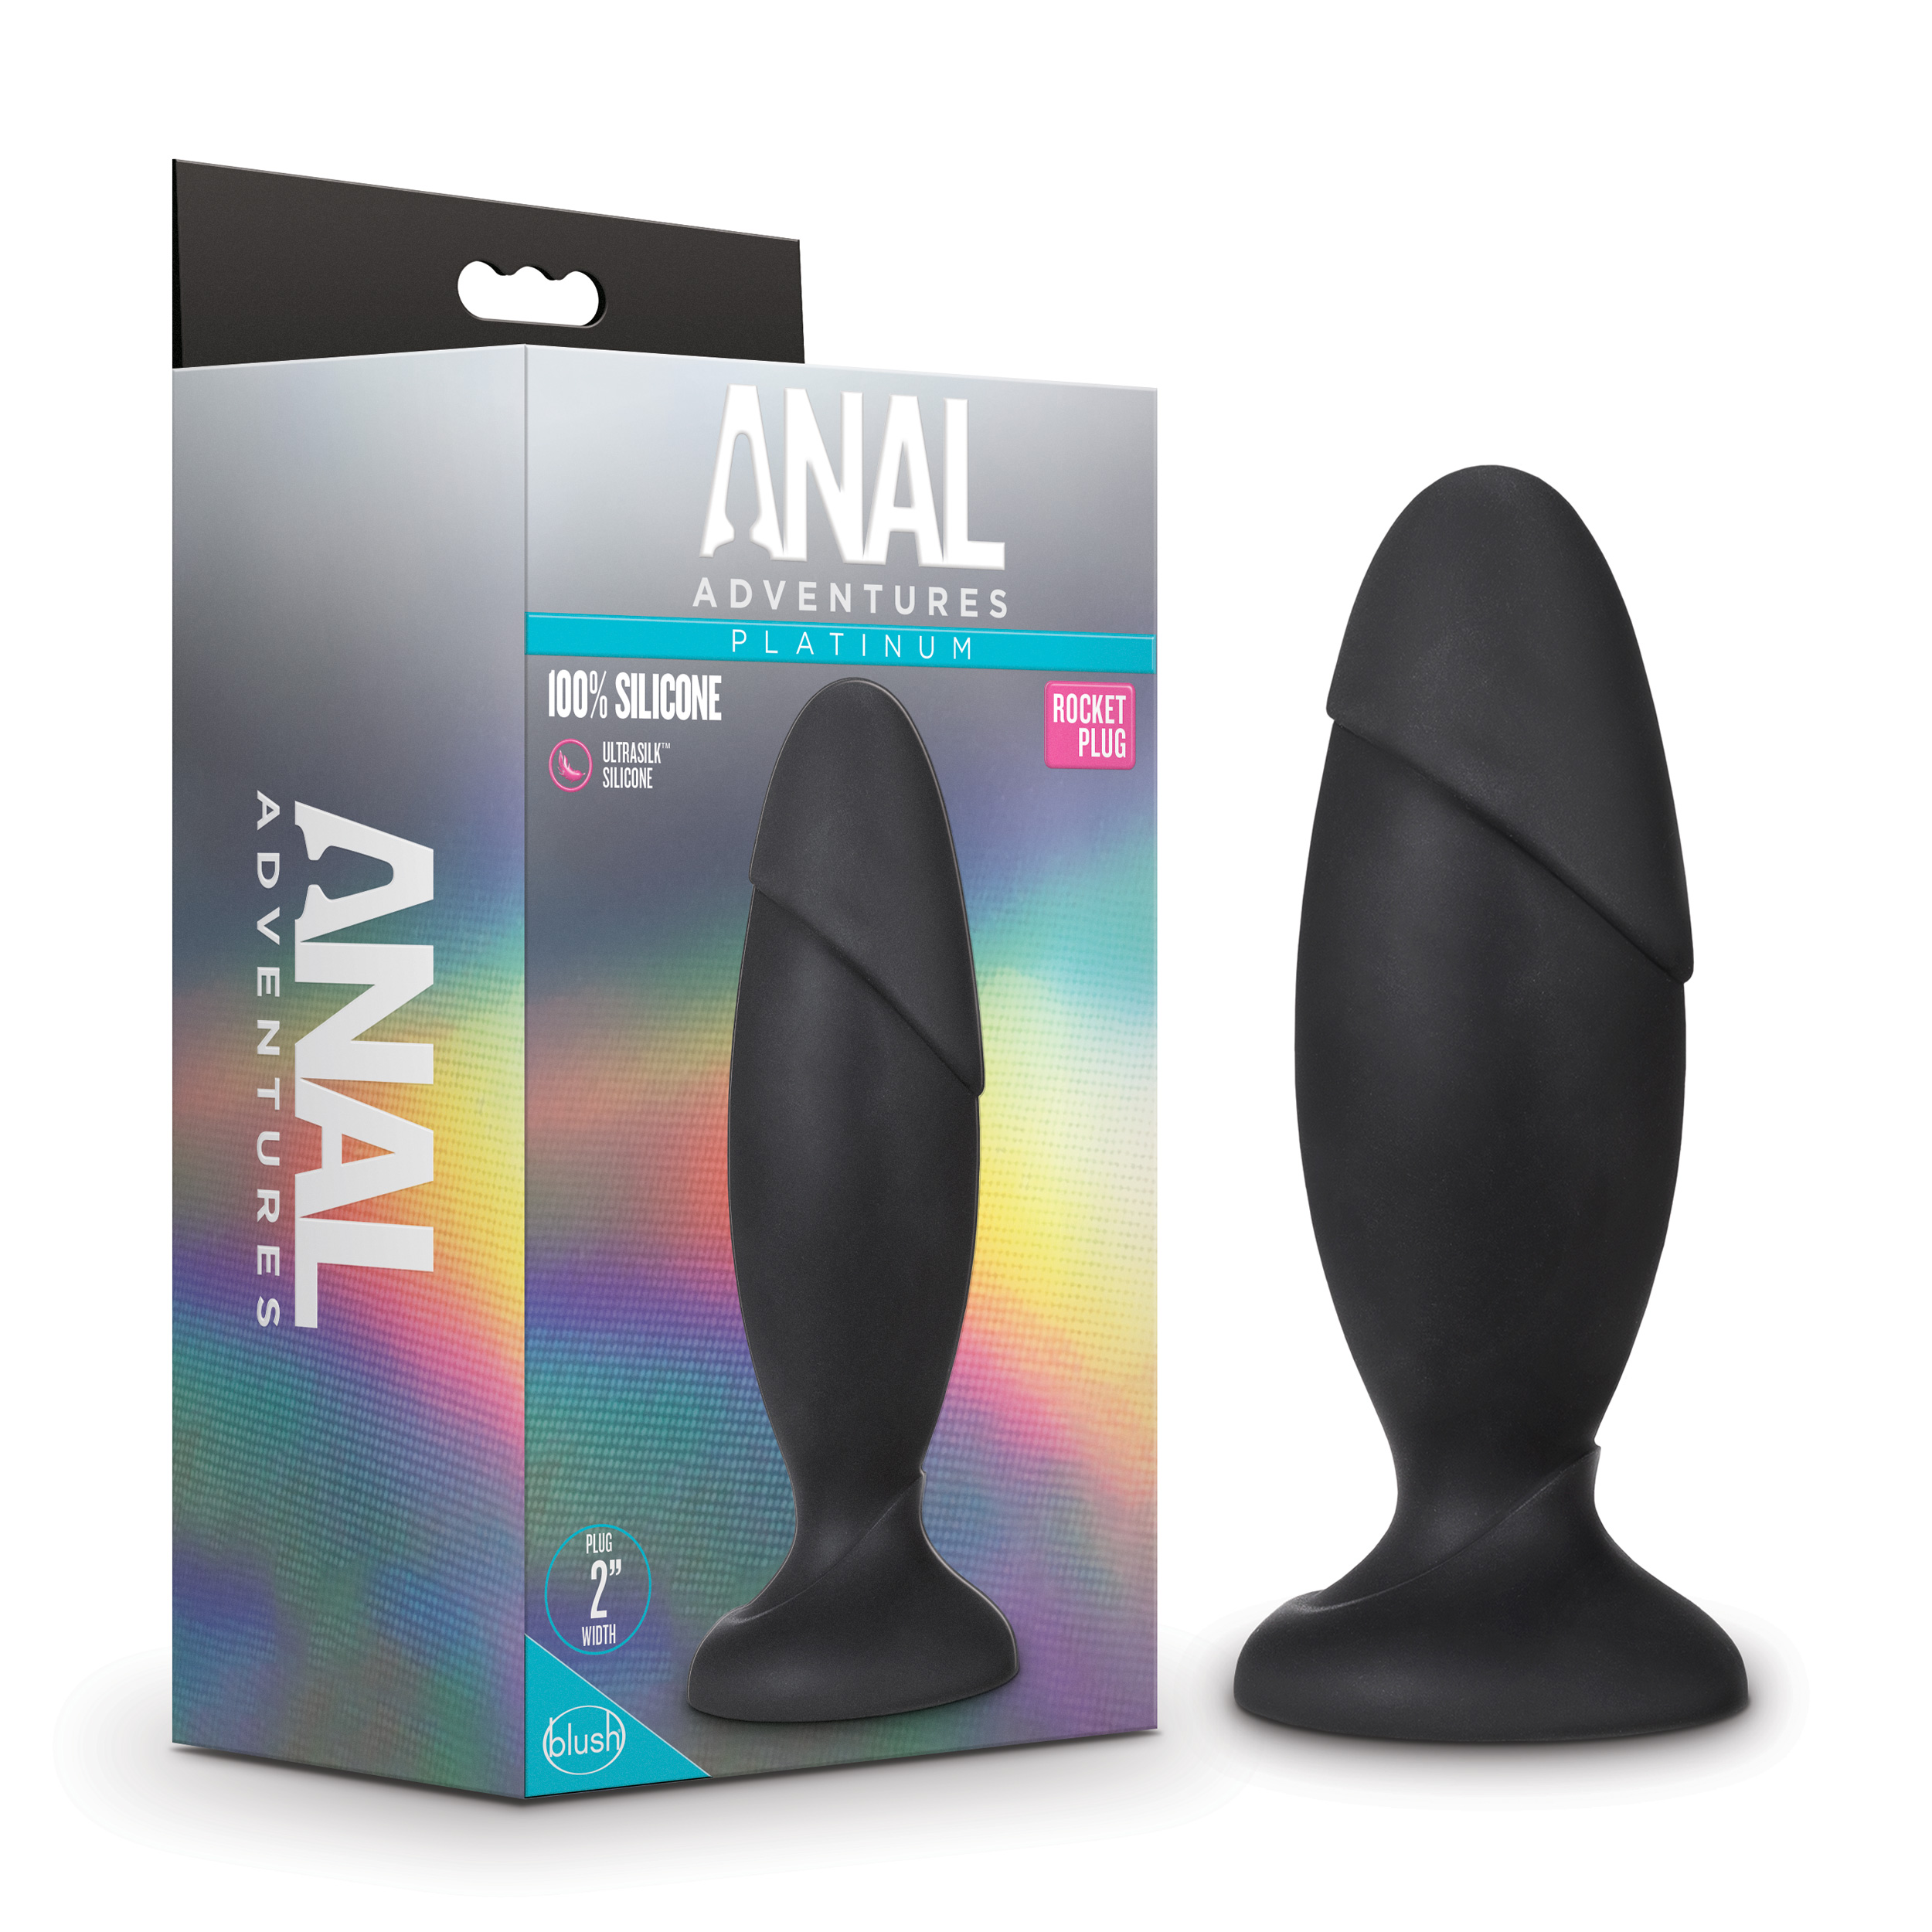 Anal Adventures Platinum - Silicone Rocket Plug - Black